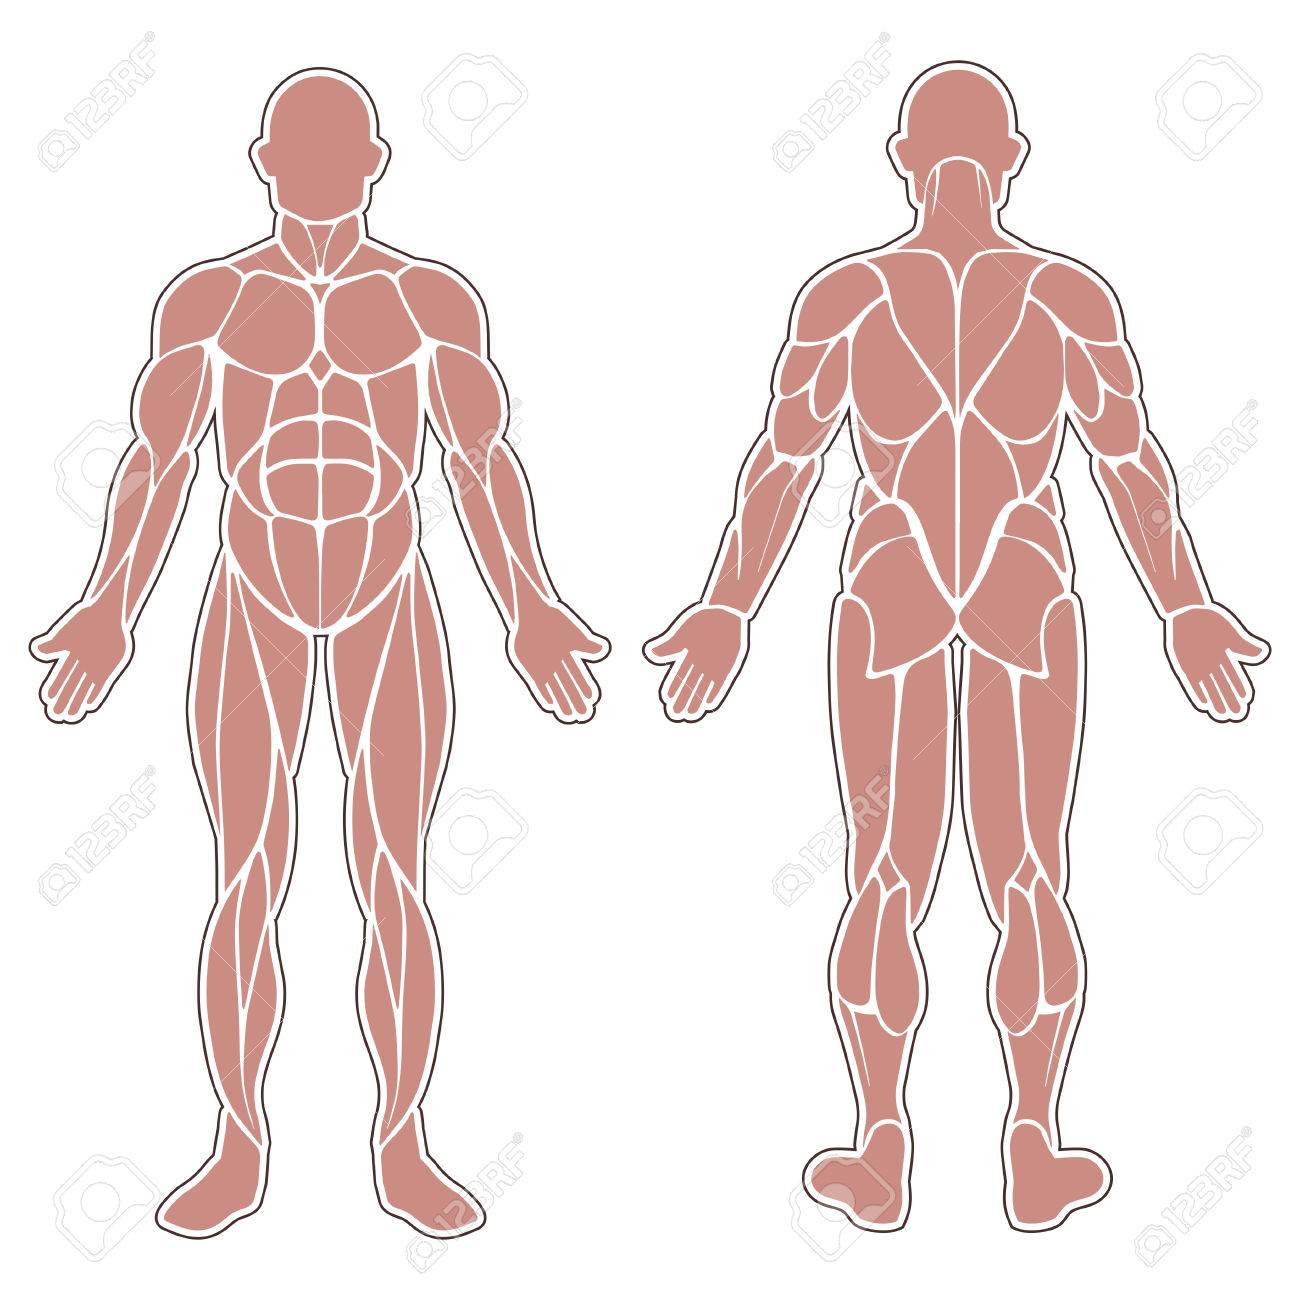 Human Muscles Silhouette Isolated On White Background Royalty Free